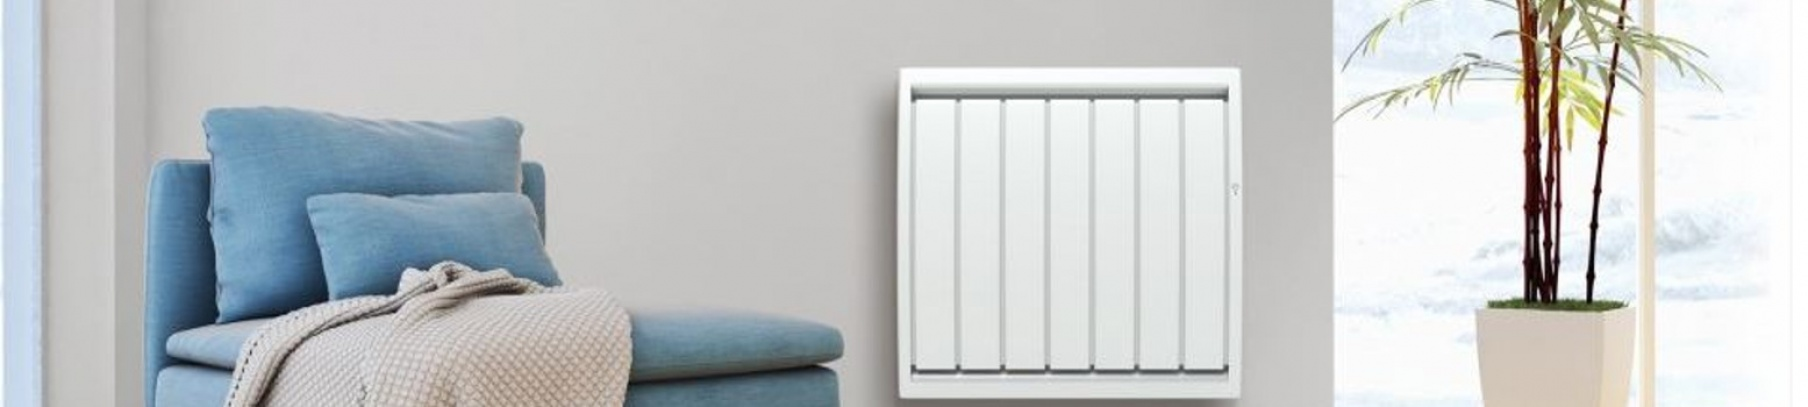 Radiator CALIDOU Smart ECOcontrol